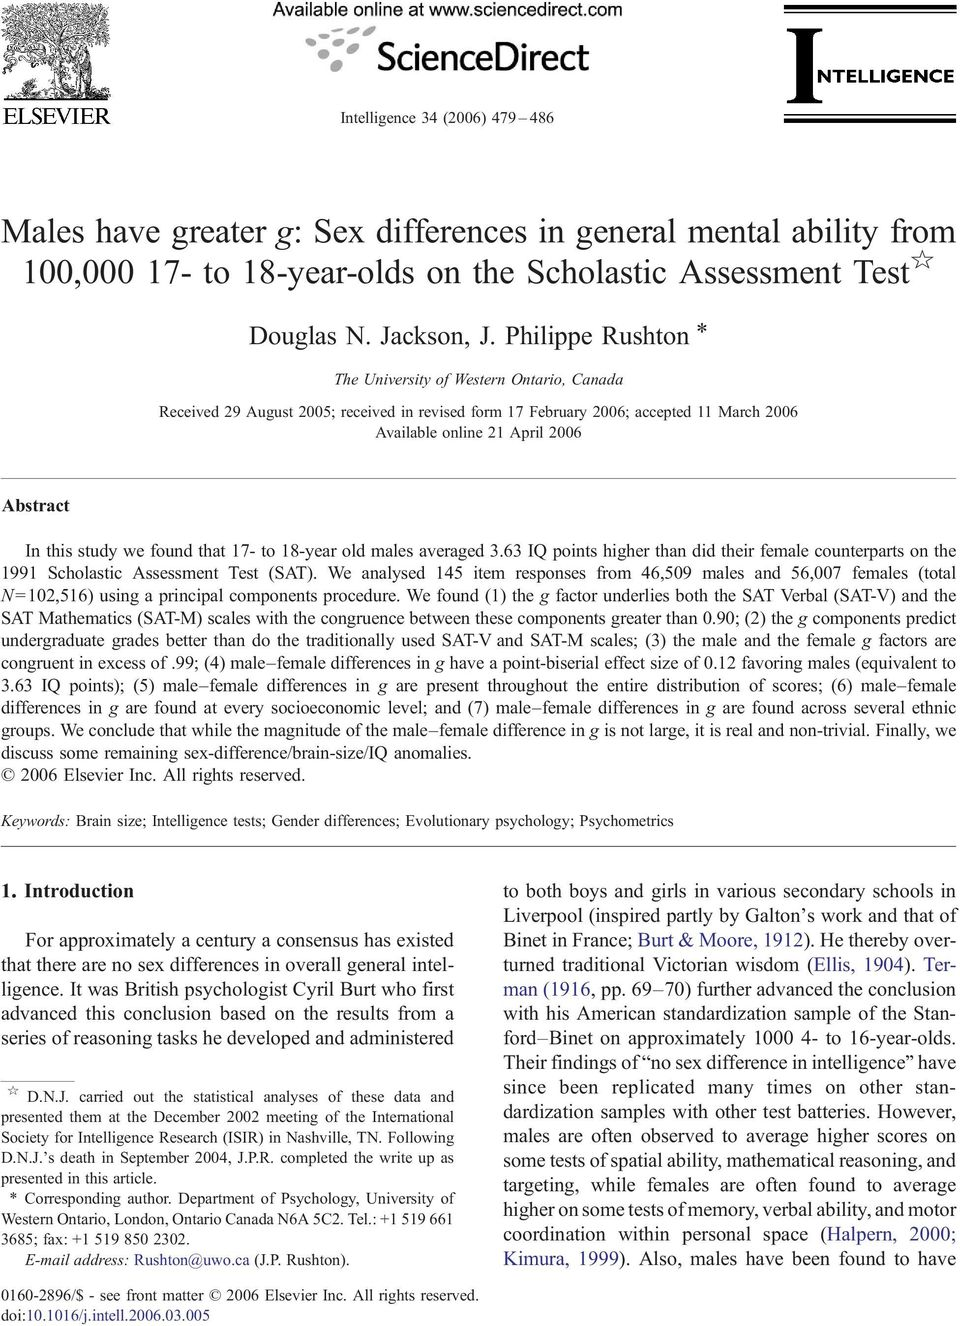 study we found that 17- to 18-year old males averaged 3.63 IQ points higher than did their female counterparts on the 1991 Scholastic Assessment Test (SAT).